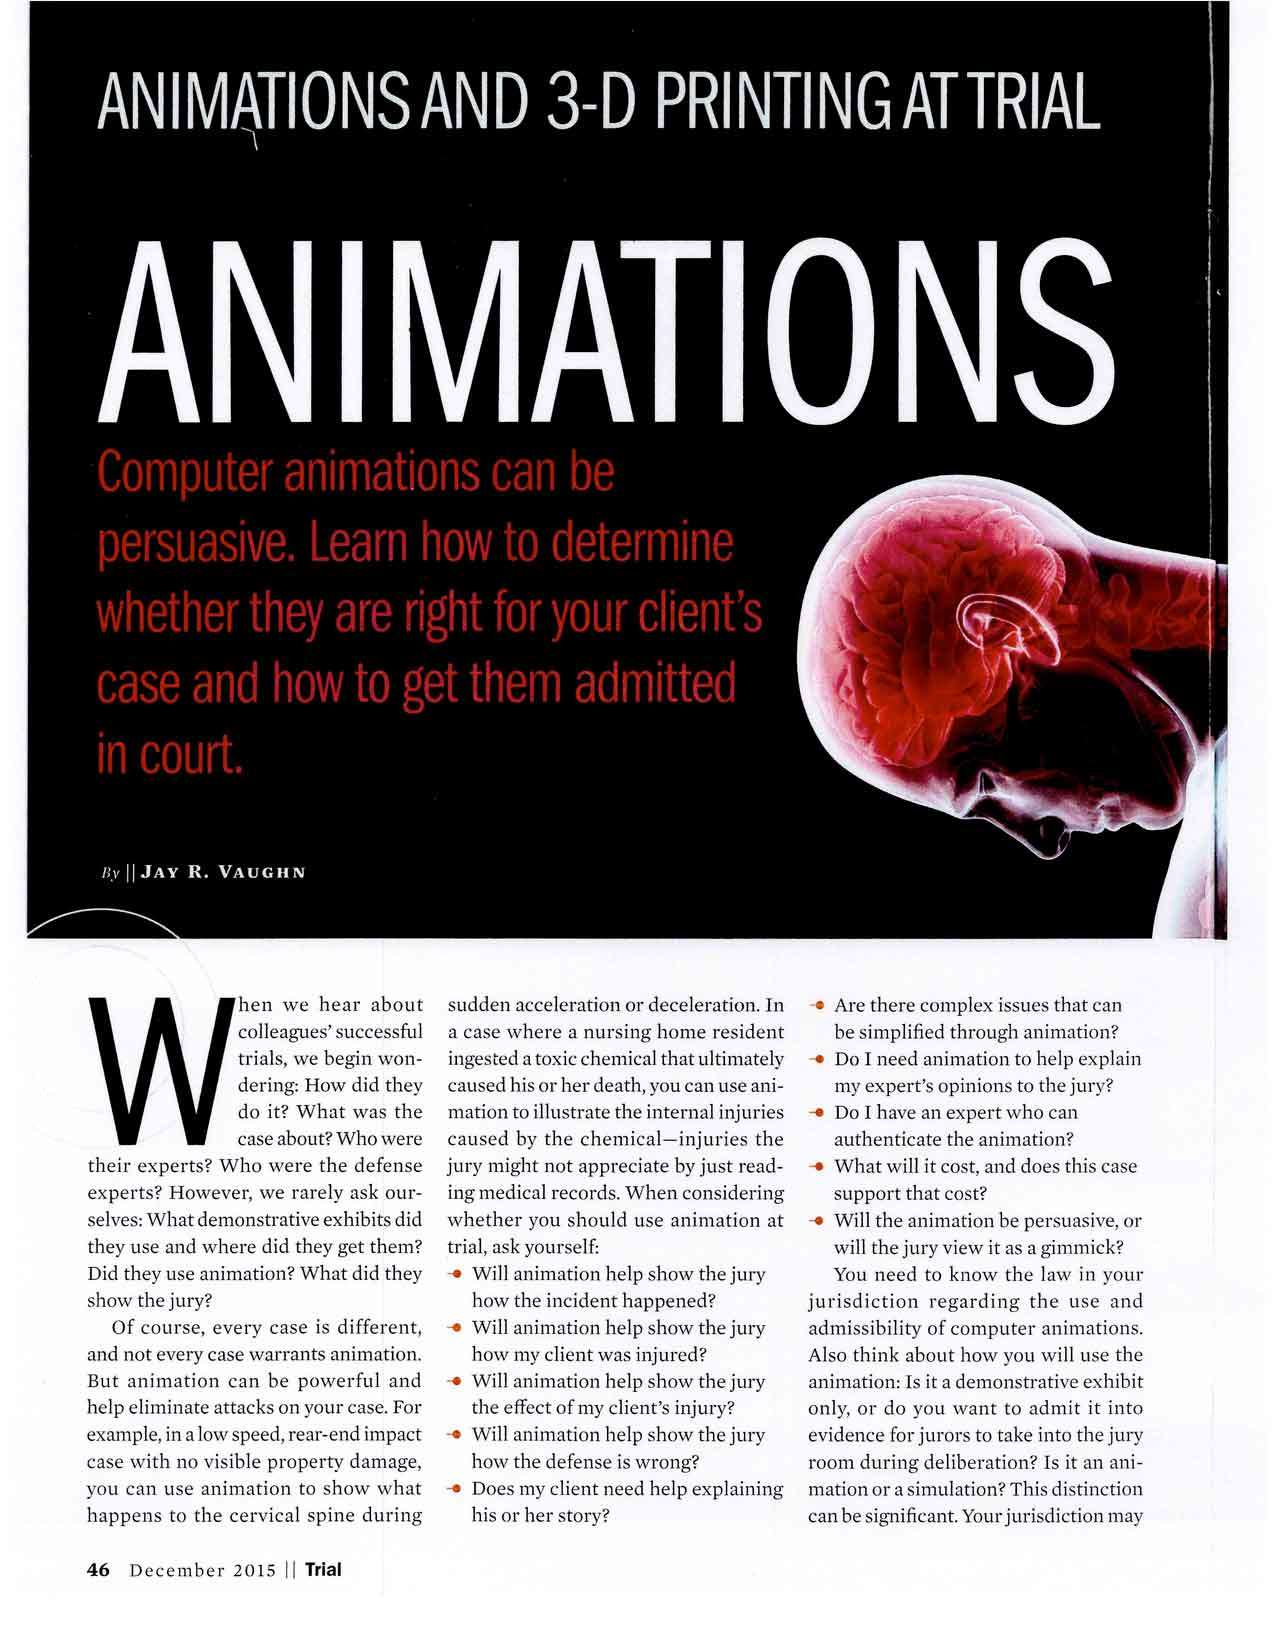 Animations Article - Trial Magazine copy